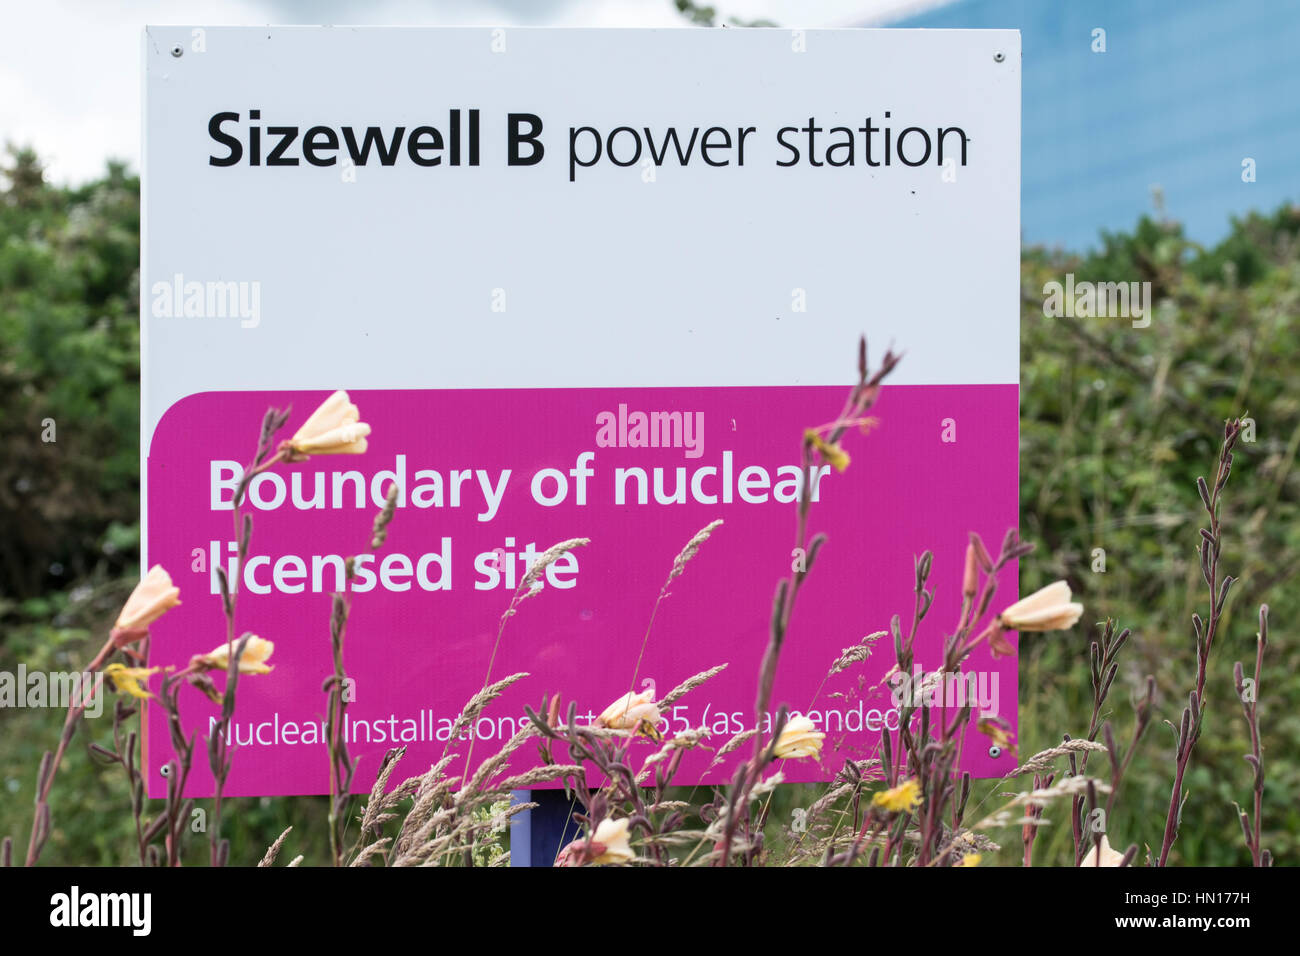 Boundry Sign, Sizewell Nuclear Power Station, England - Stock Image